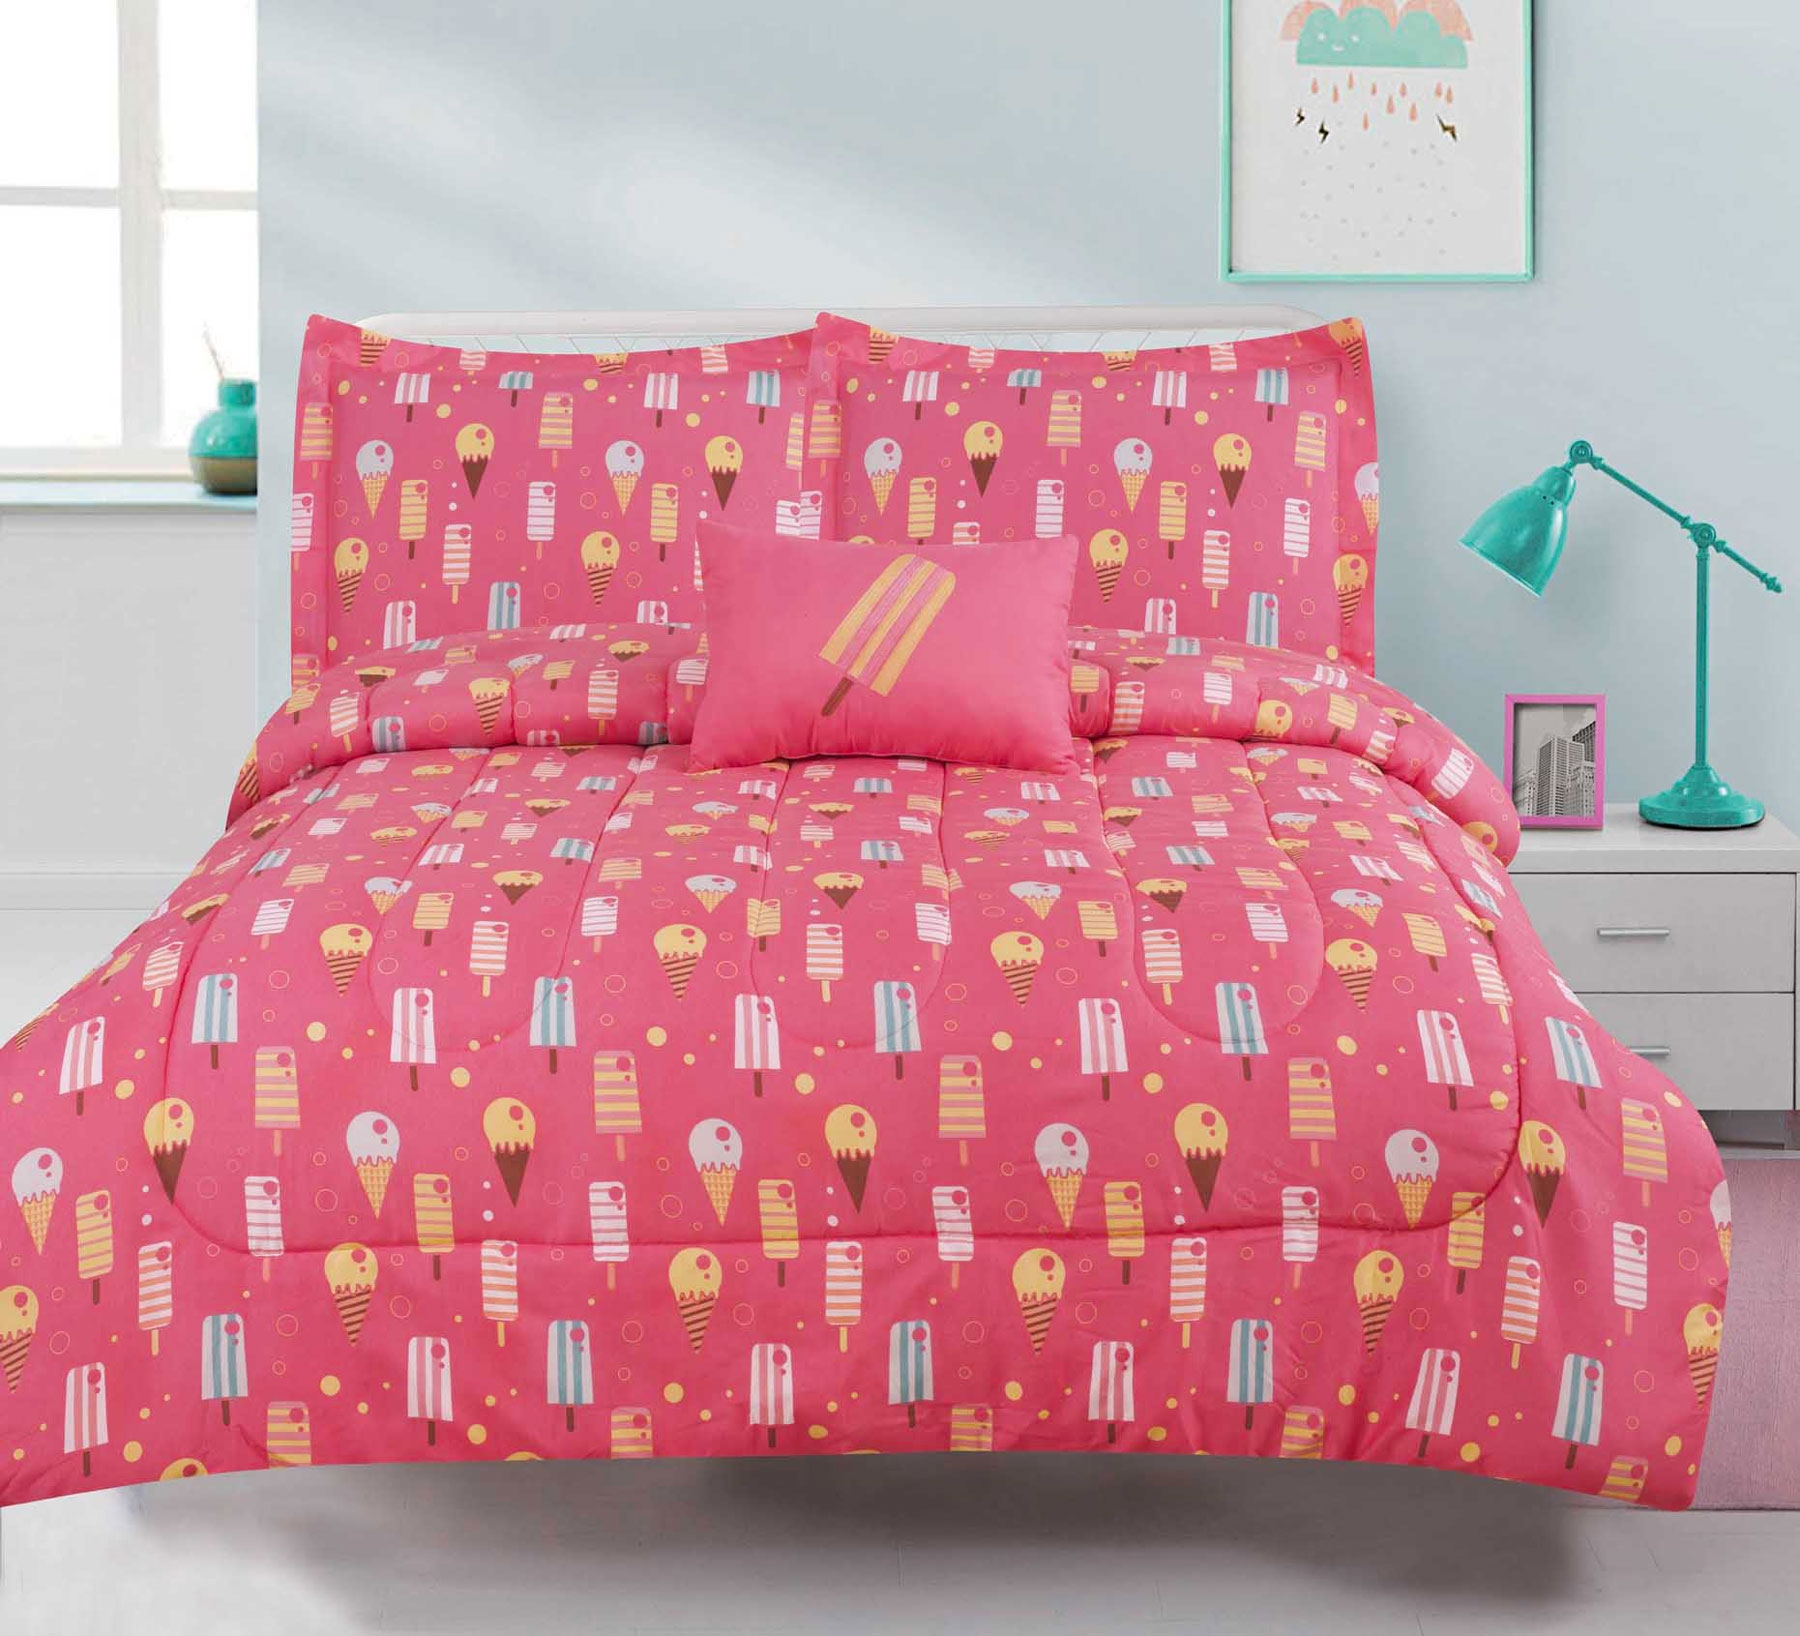 Twin Girls Bedding Ice Cream Cone Comforter 3 Piece Bed Set, Pink Popsicle